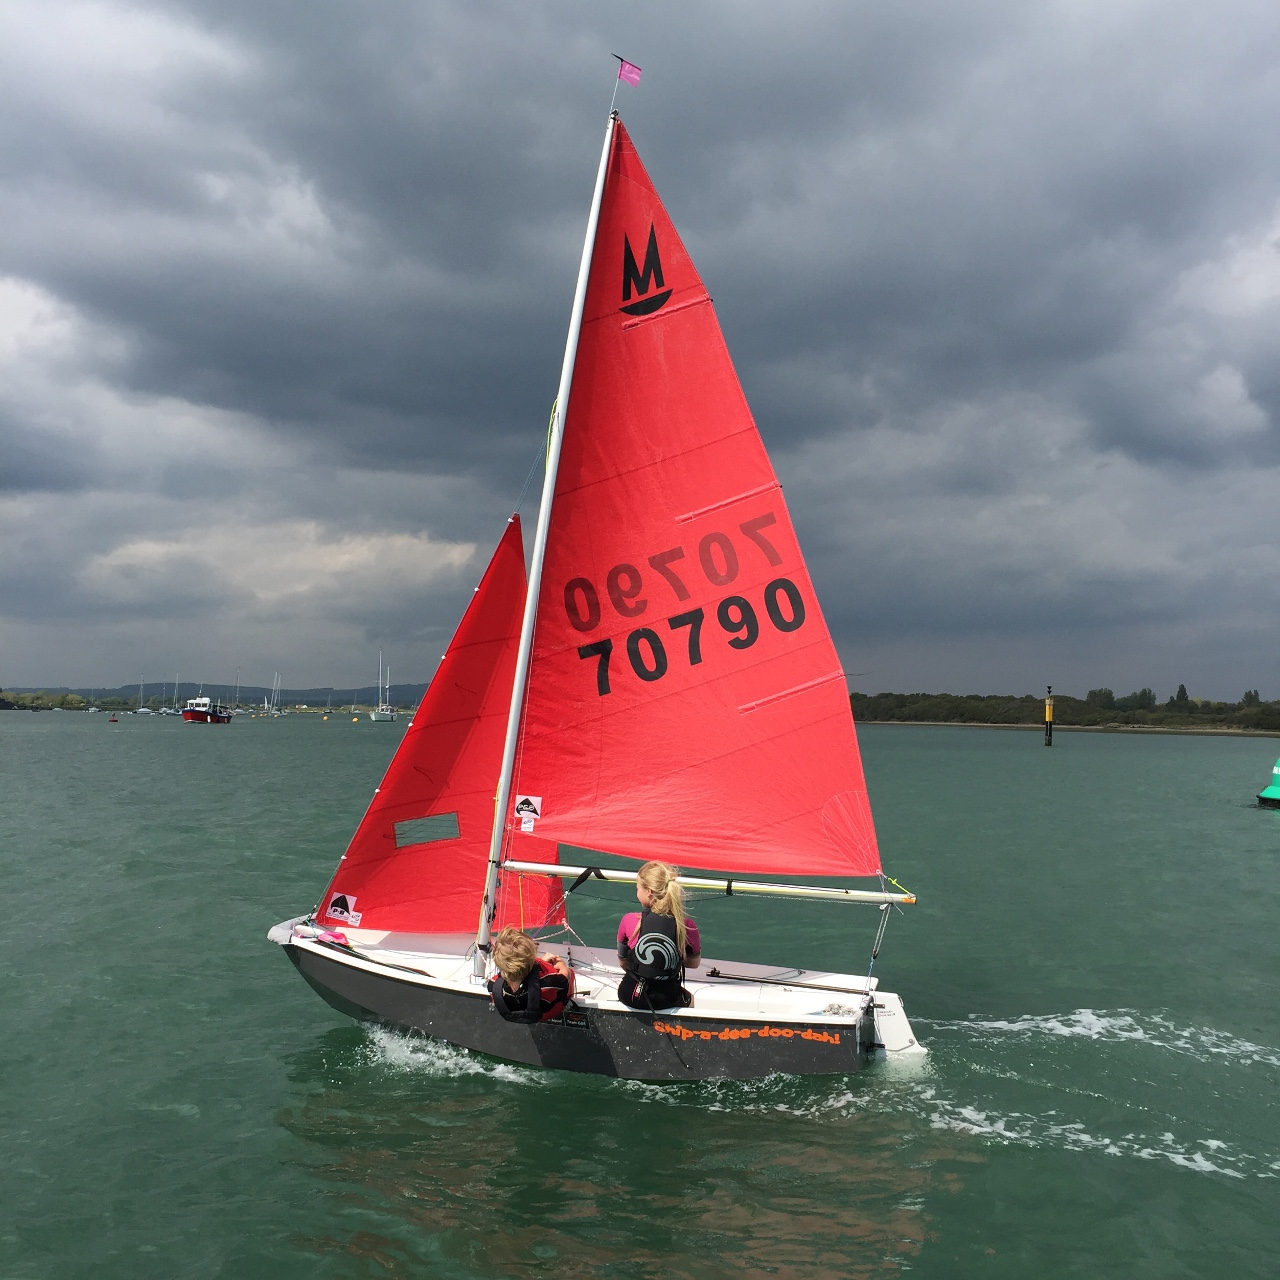 A grey GRP Mirror dinghy being sailed by two children